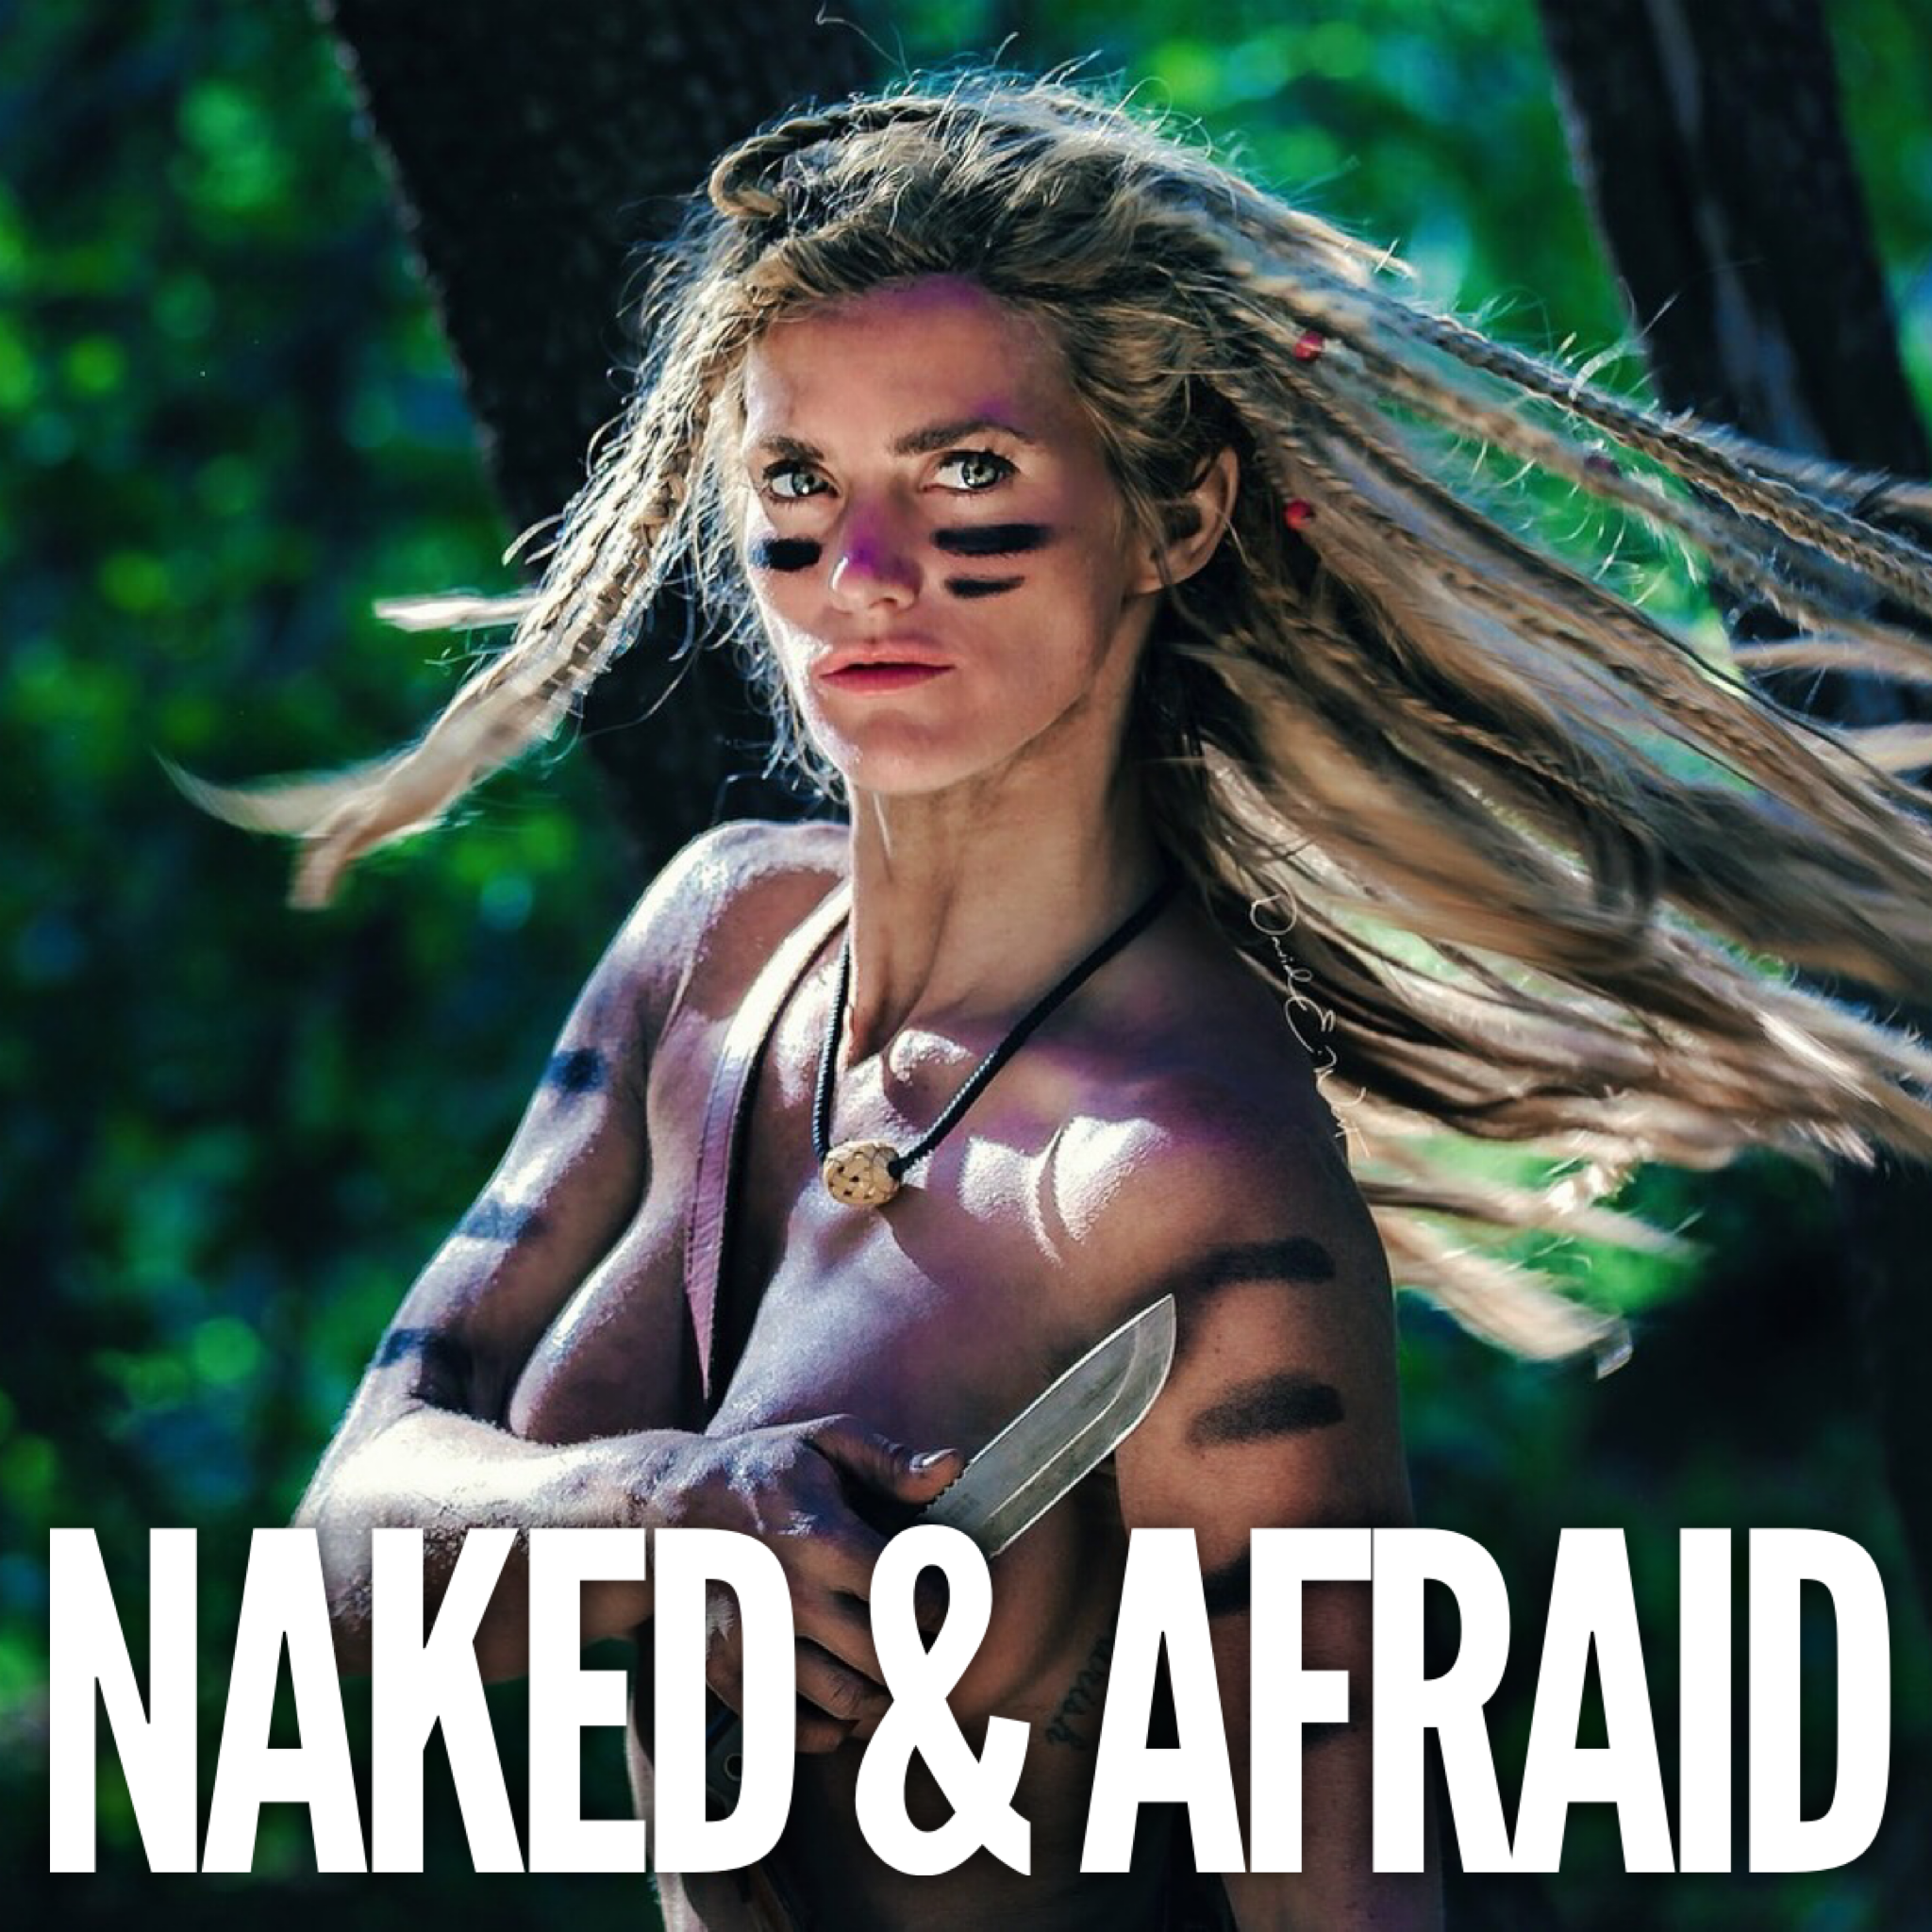 Naked & Afraid's Melissa Miller